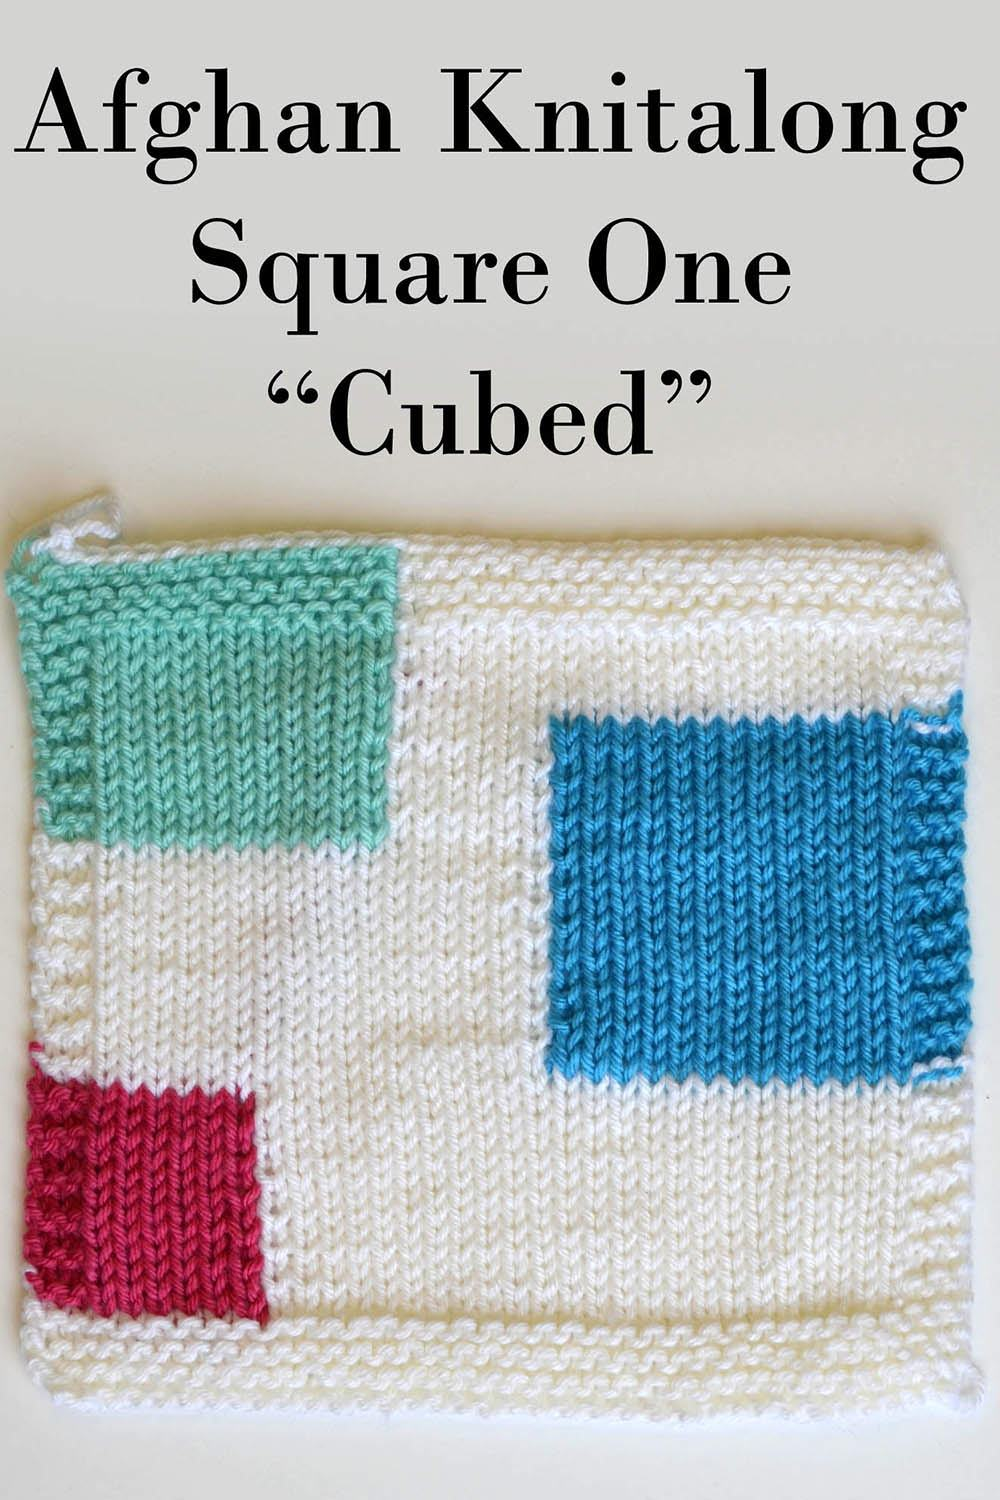 Afghan Knitalong Square 1 - Cubed Pattern Universal Yarn